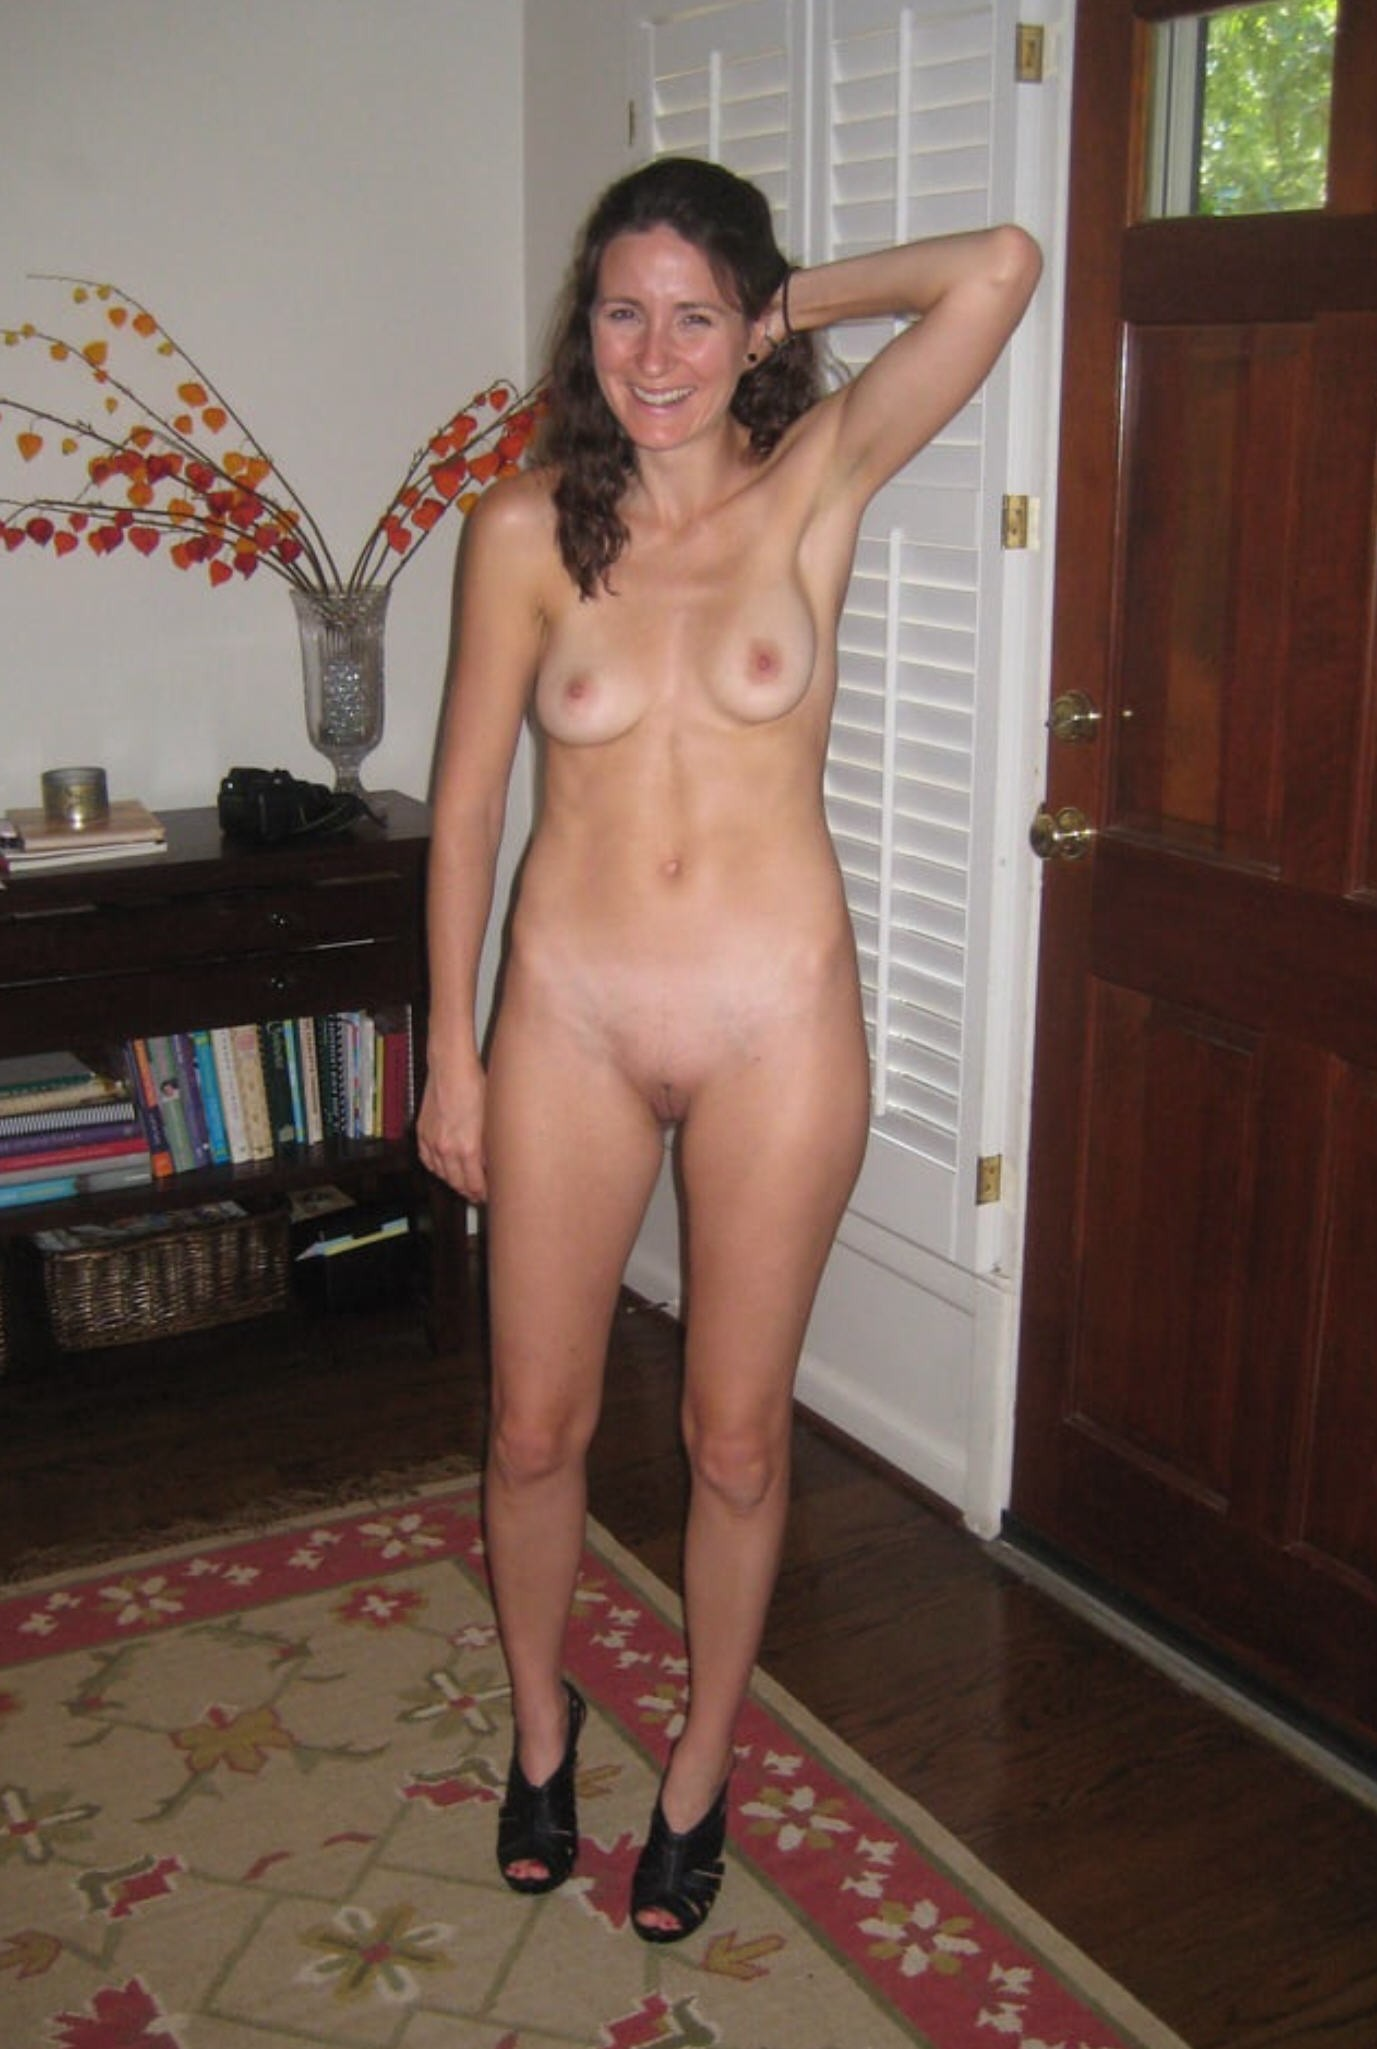 brunette at a glory hole picture uploaded imaging